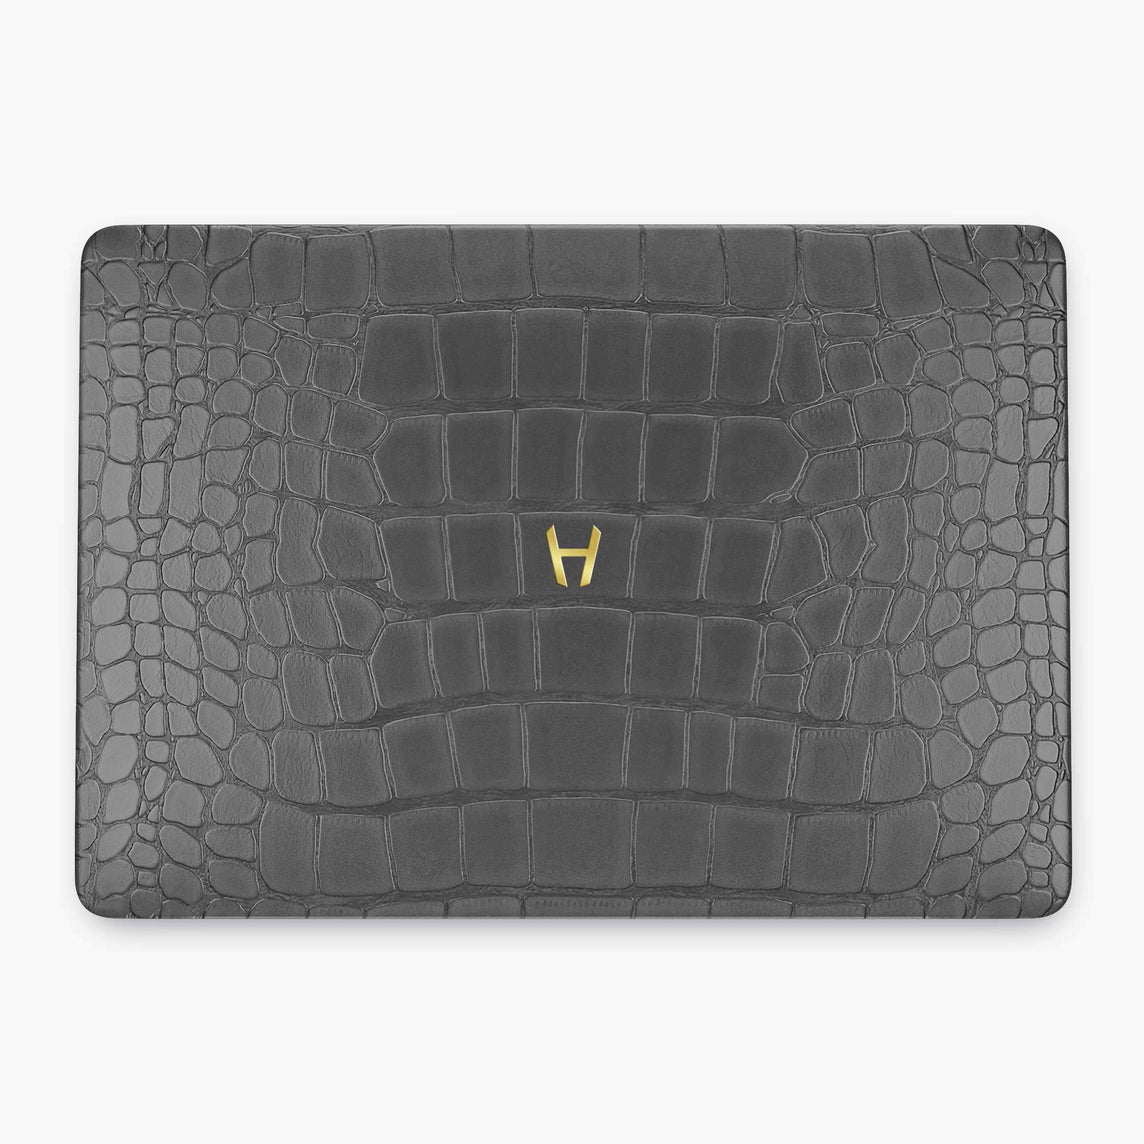 Alligator Macbook Case Apple Mac Book Air | Grey - Yellow Gold